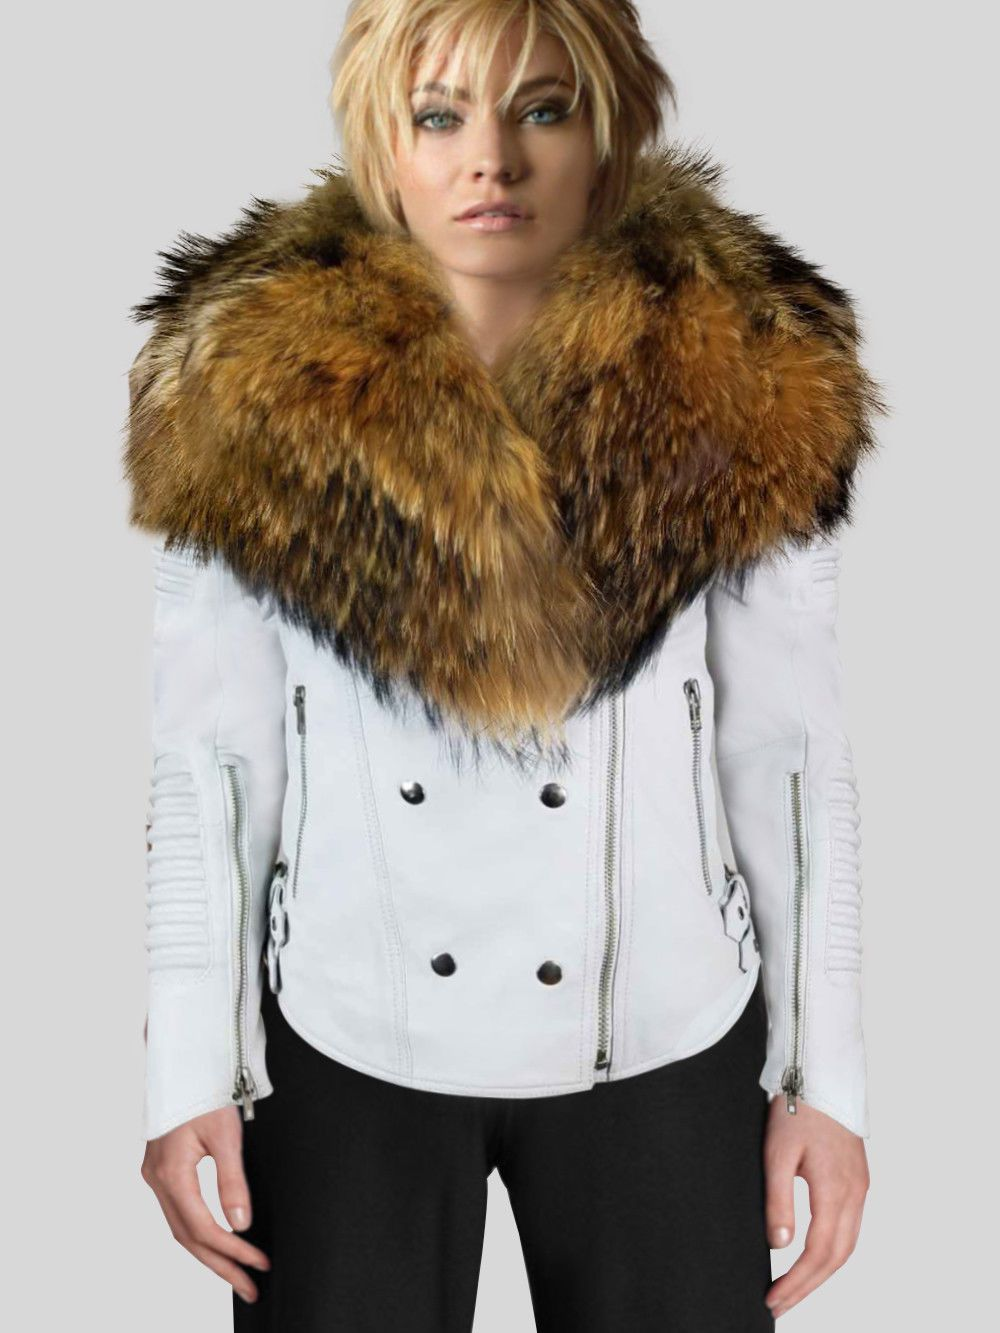 Details about SNOW WHITE LEATHER JACKET WITH REAL FUR